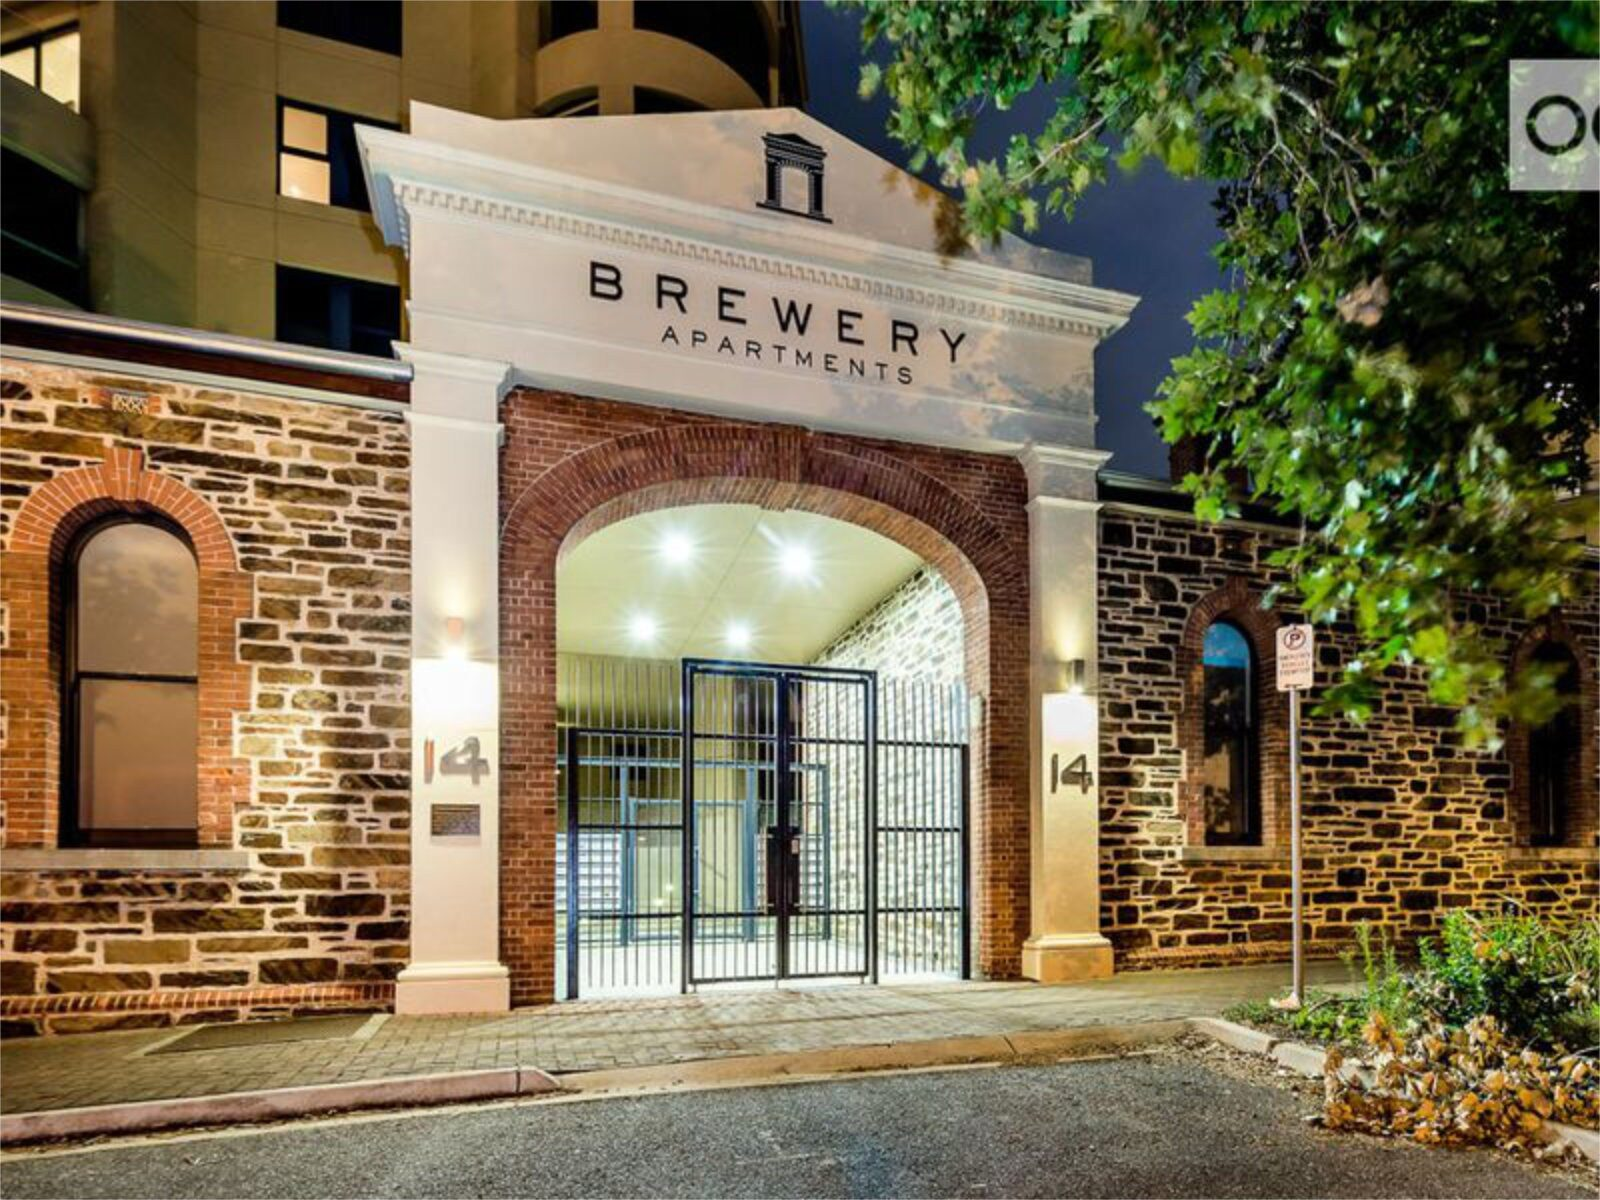 Brewery Apartments2